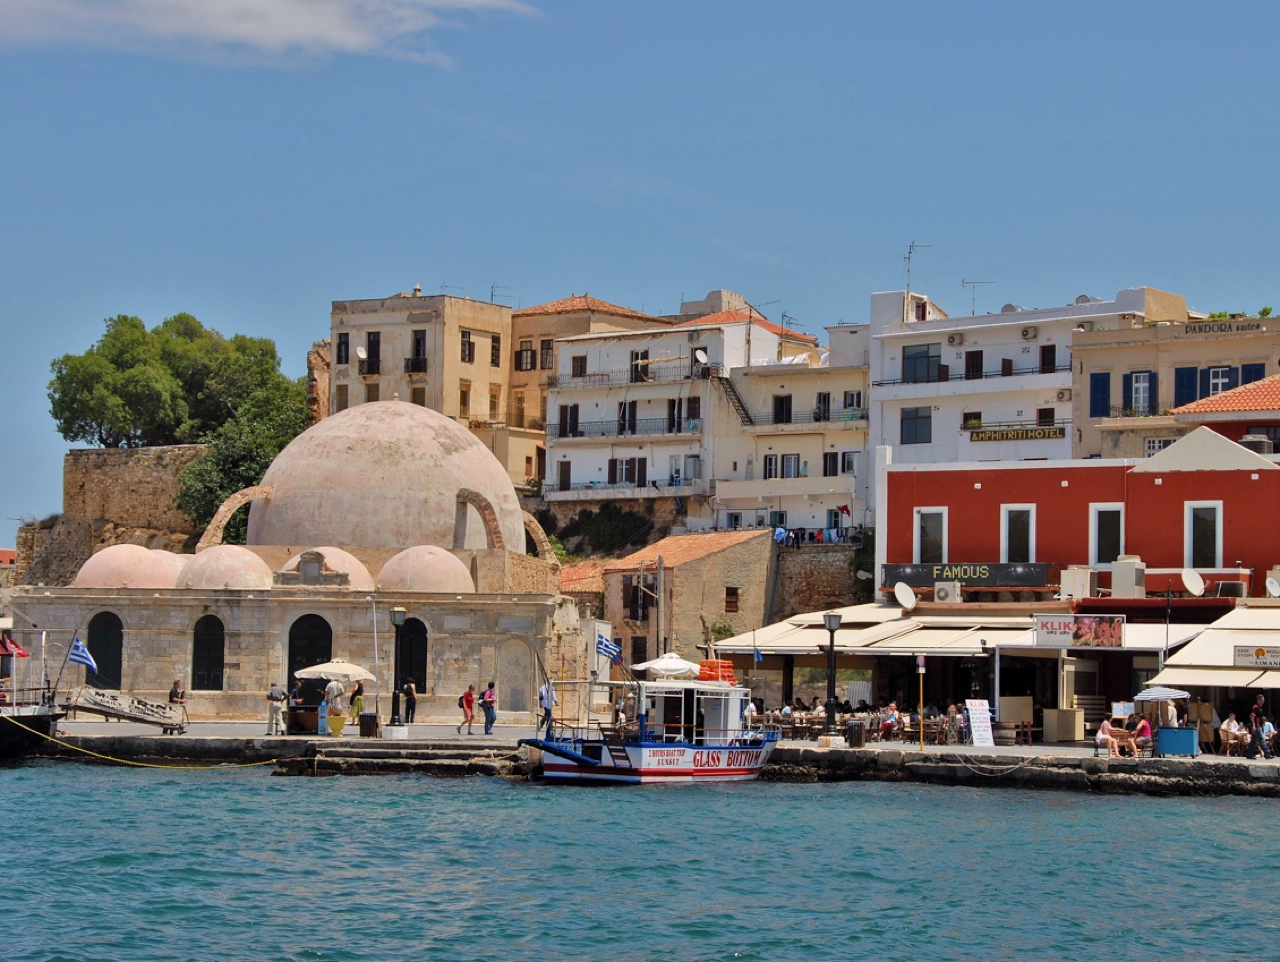 chania old venetian port, chania town, chania travel guide, things to do